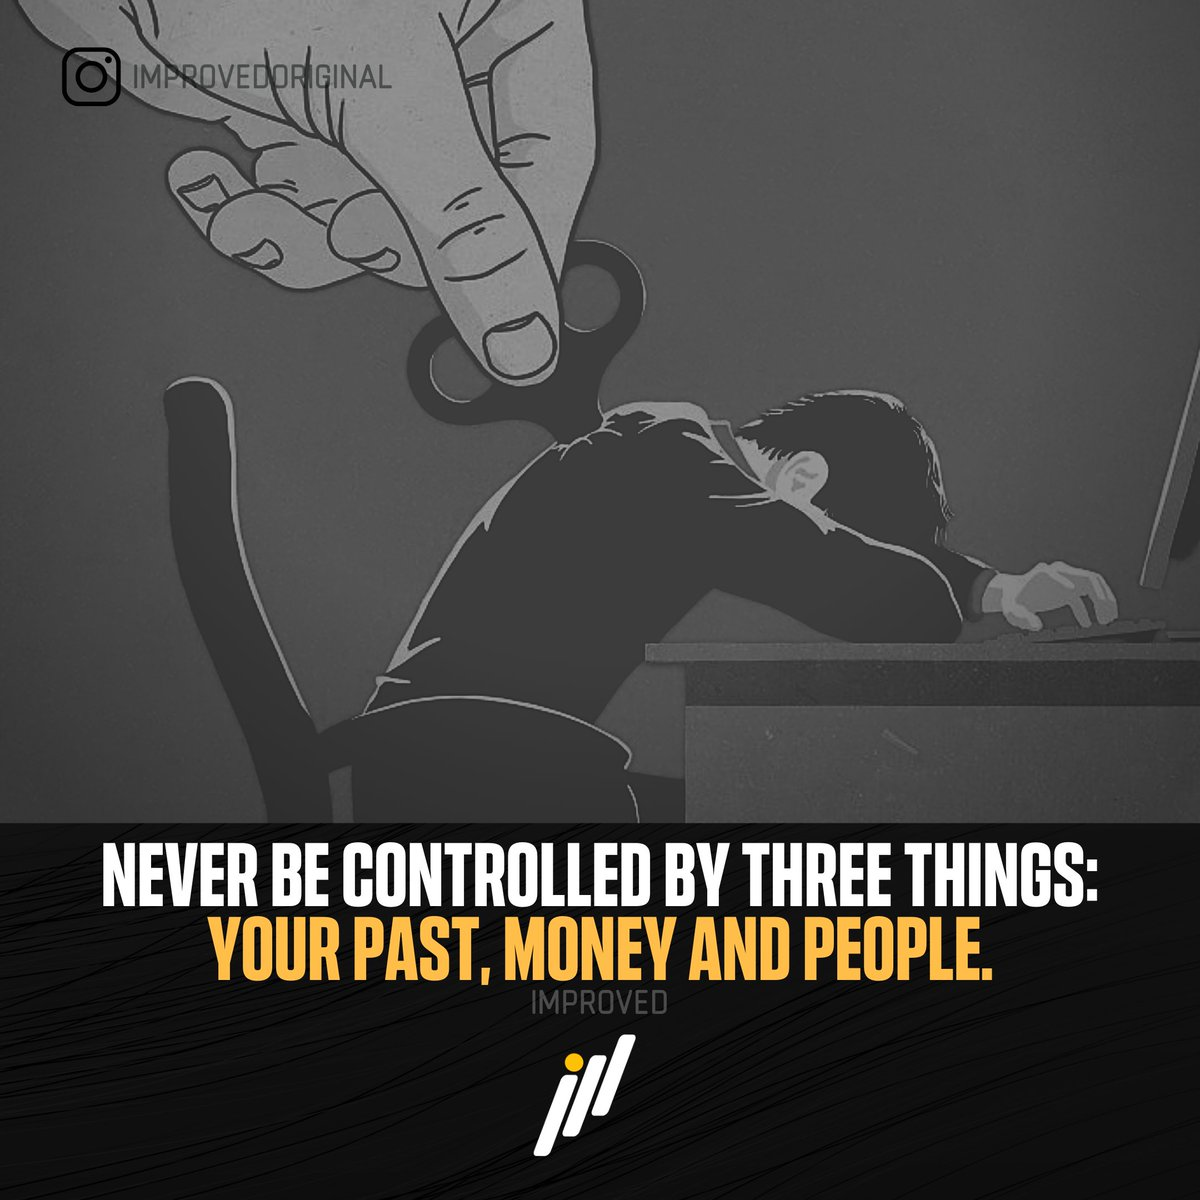 Do not allow any thing to disturb you!  More on our IG: https://www.instagram.com/improvedoriginal … #motivationalquotes #motivation #goals #mindset #instagram #inspiration #qoutes #positivevibes #positivityiskey #success #power #life #qoutesoftheday #motivation101 #moneyheist #successquotes #improvepic.twitter.com/OXrszJ7Ym0